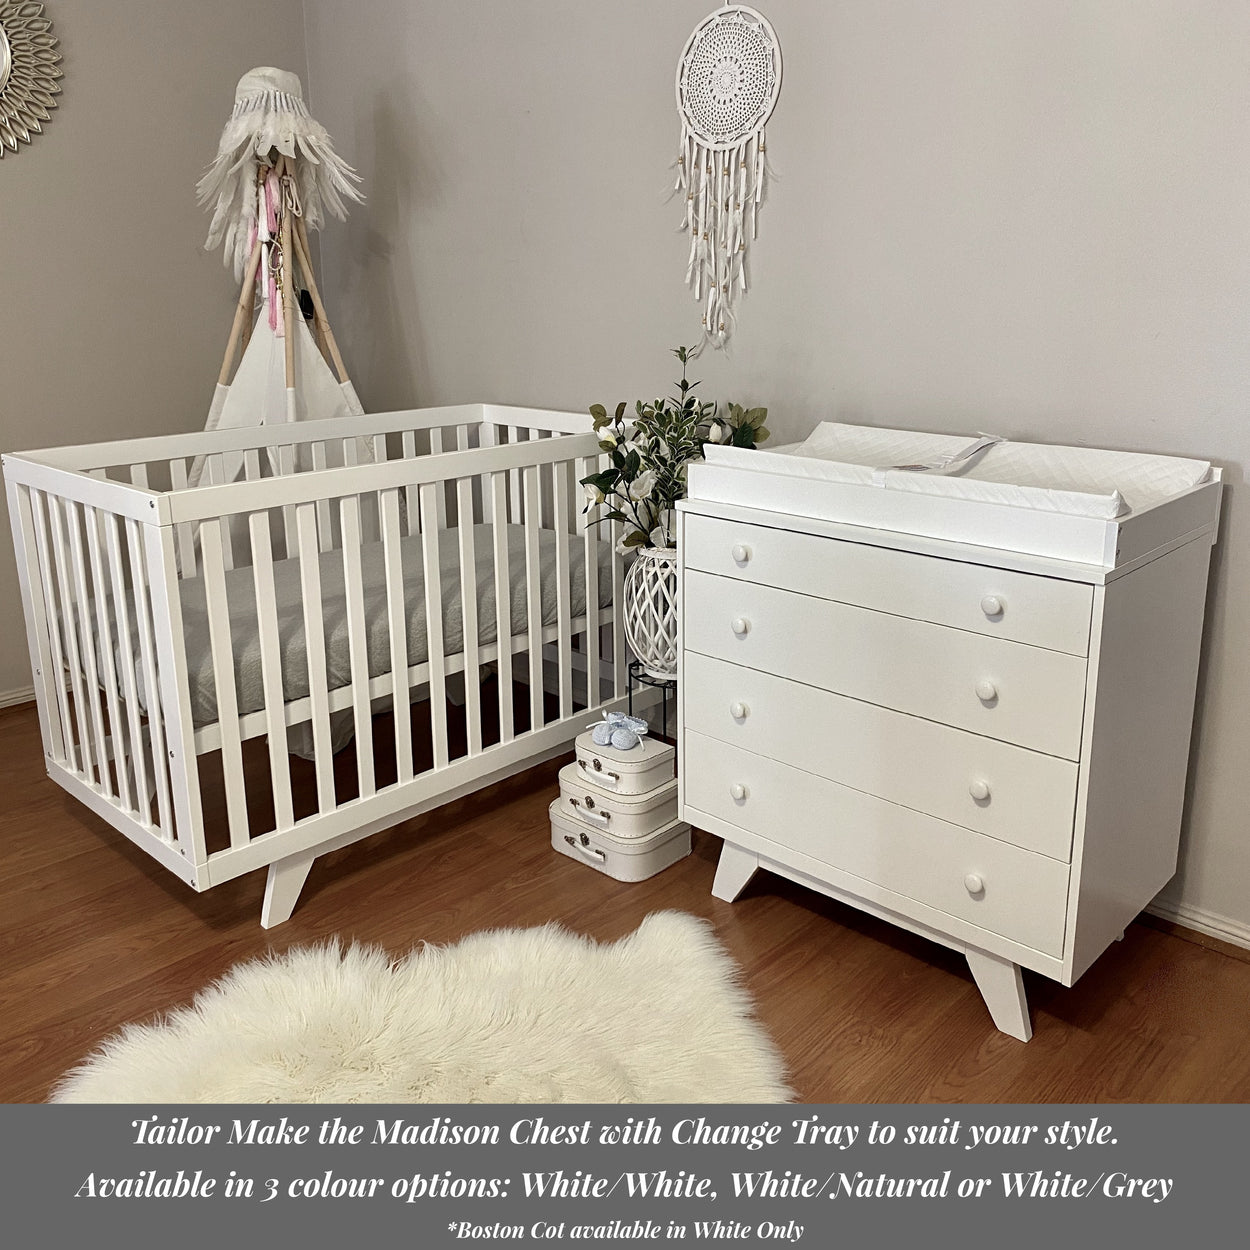 Boston Cot White & Madison 4 Drawer Chest Package - FREE SHIPPING**